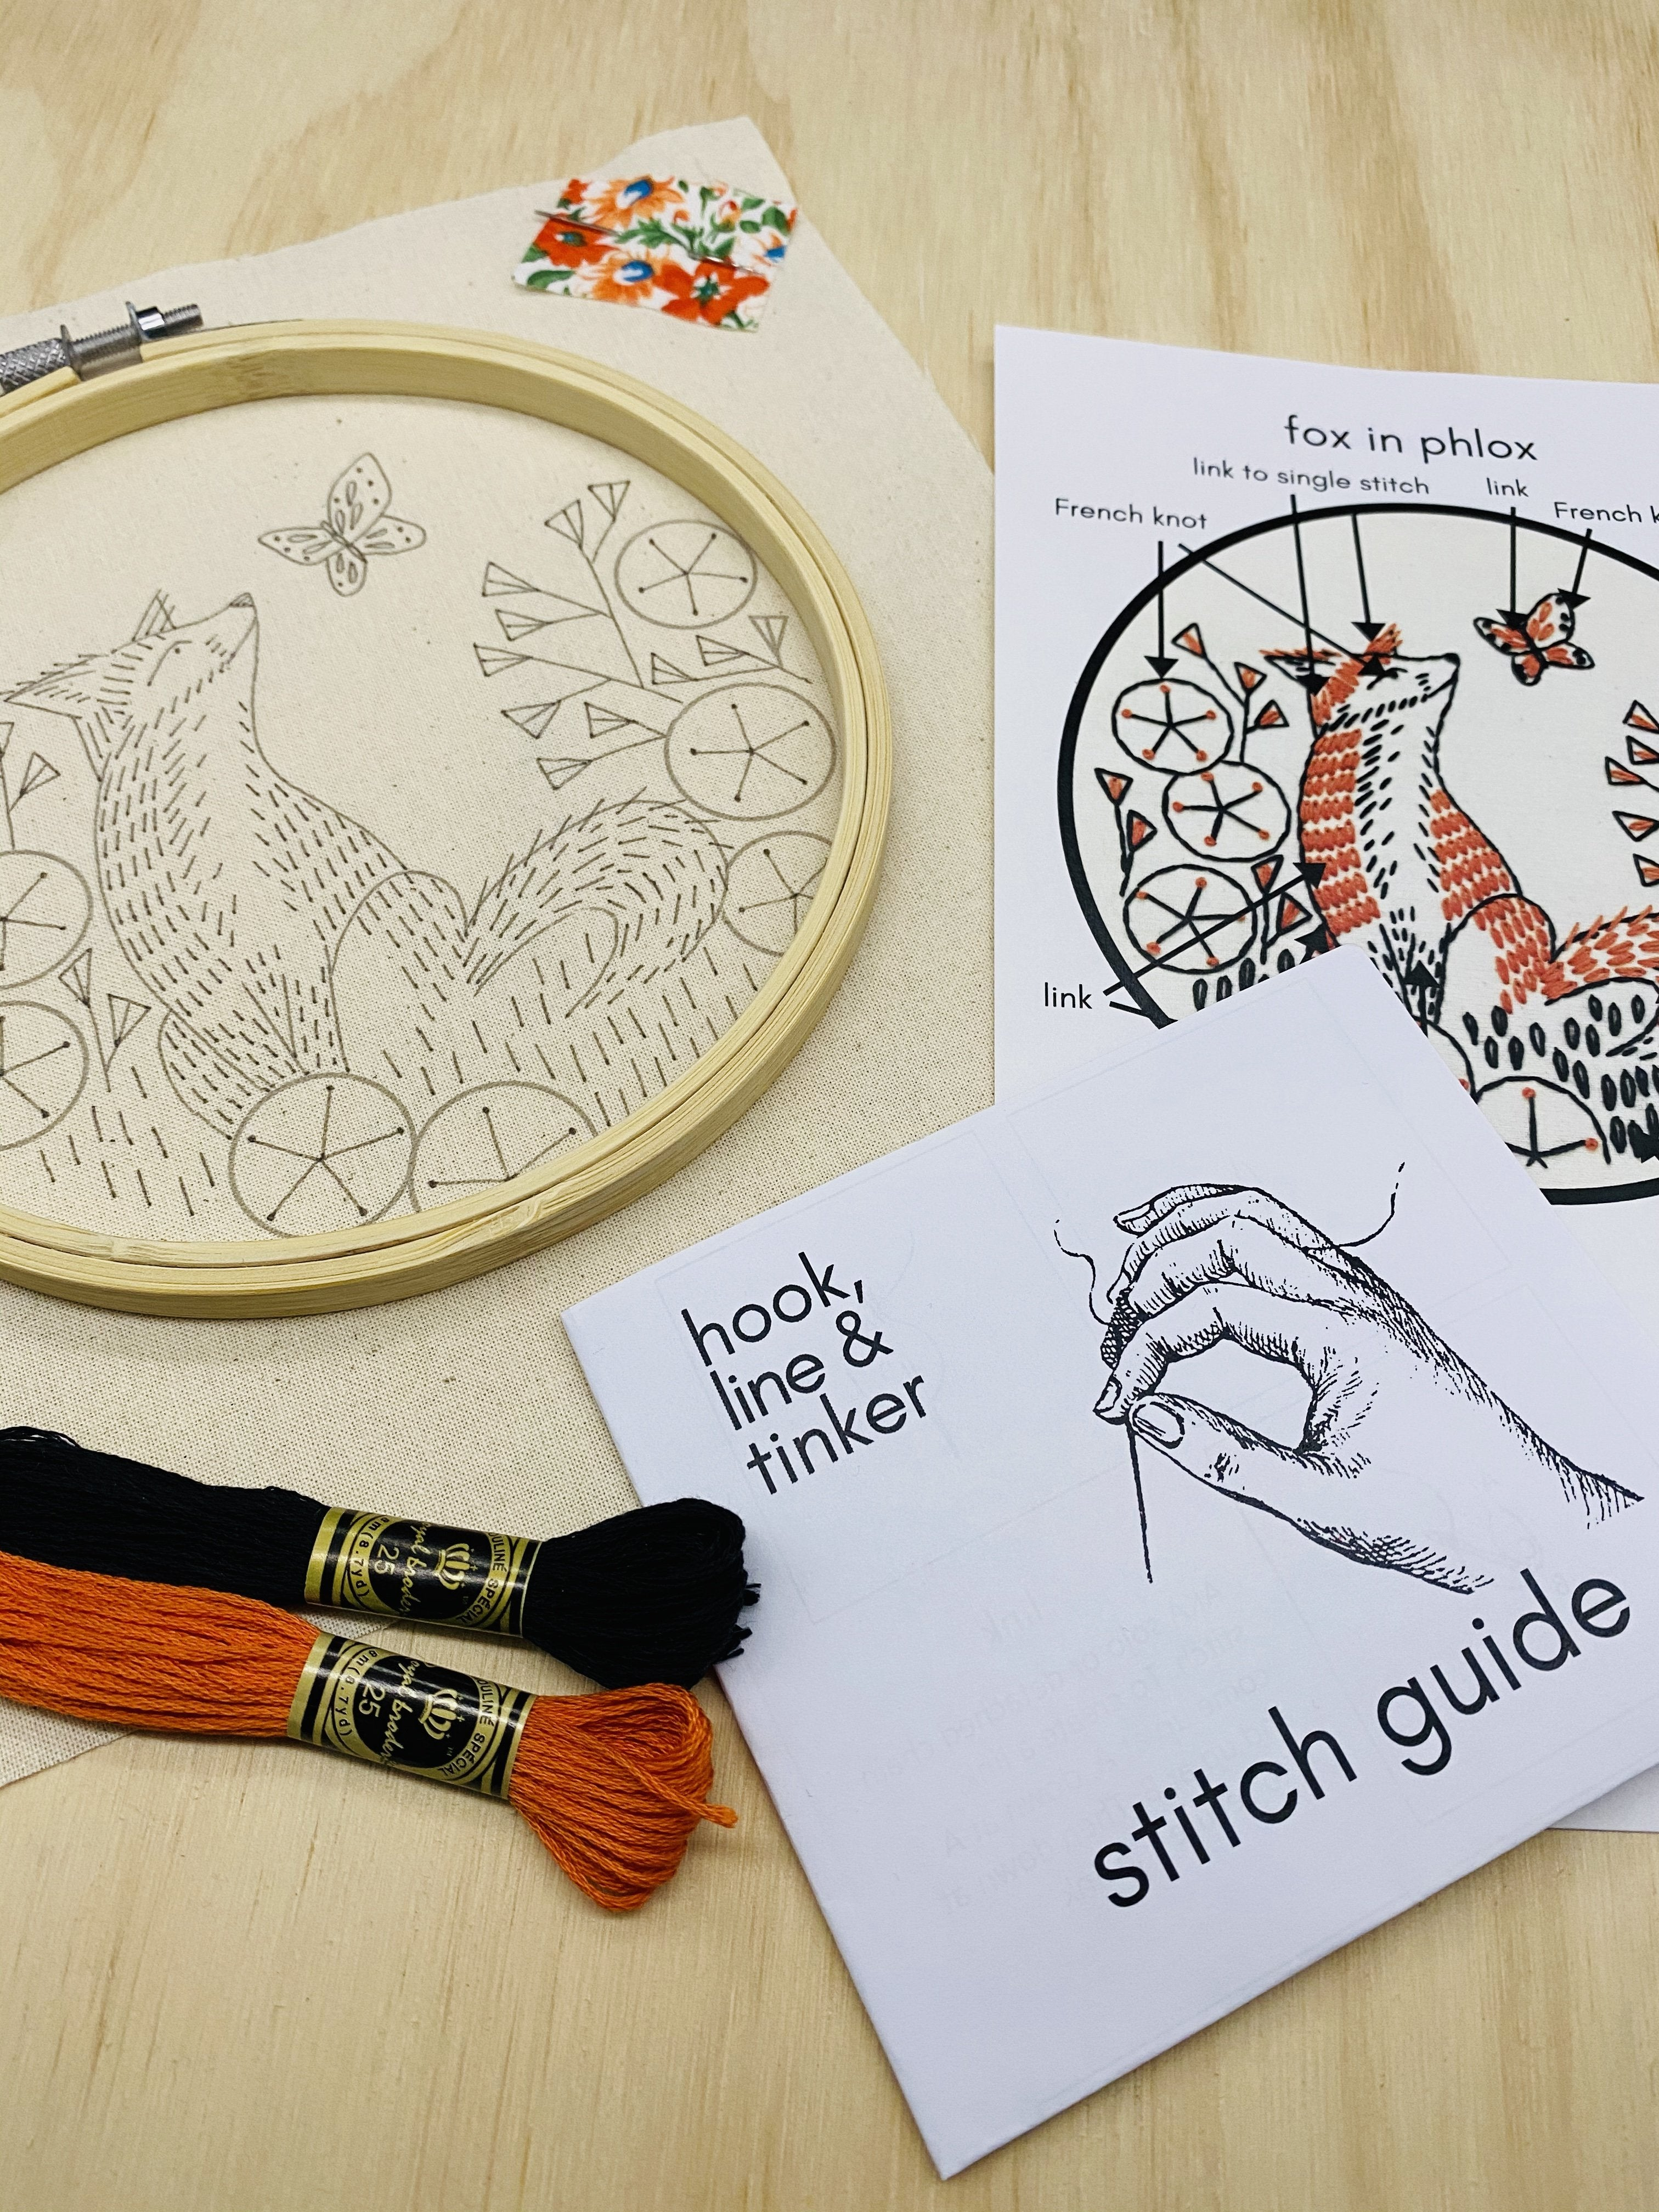 Fox in Phlox Embroidery Kit | Hook, Line & Tinker